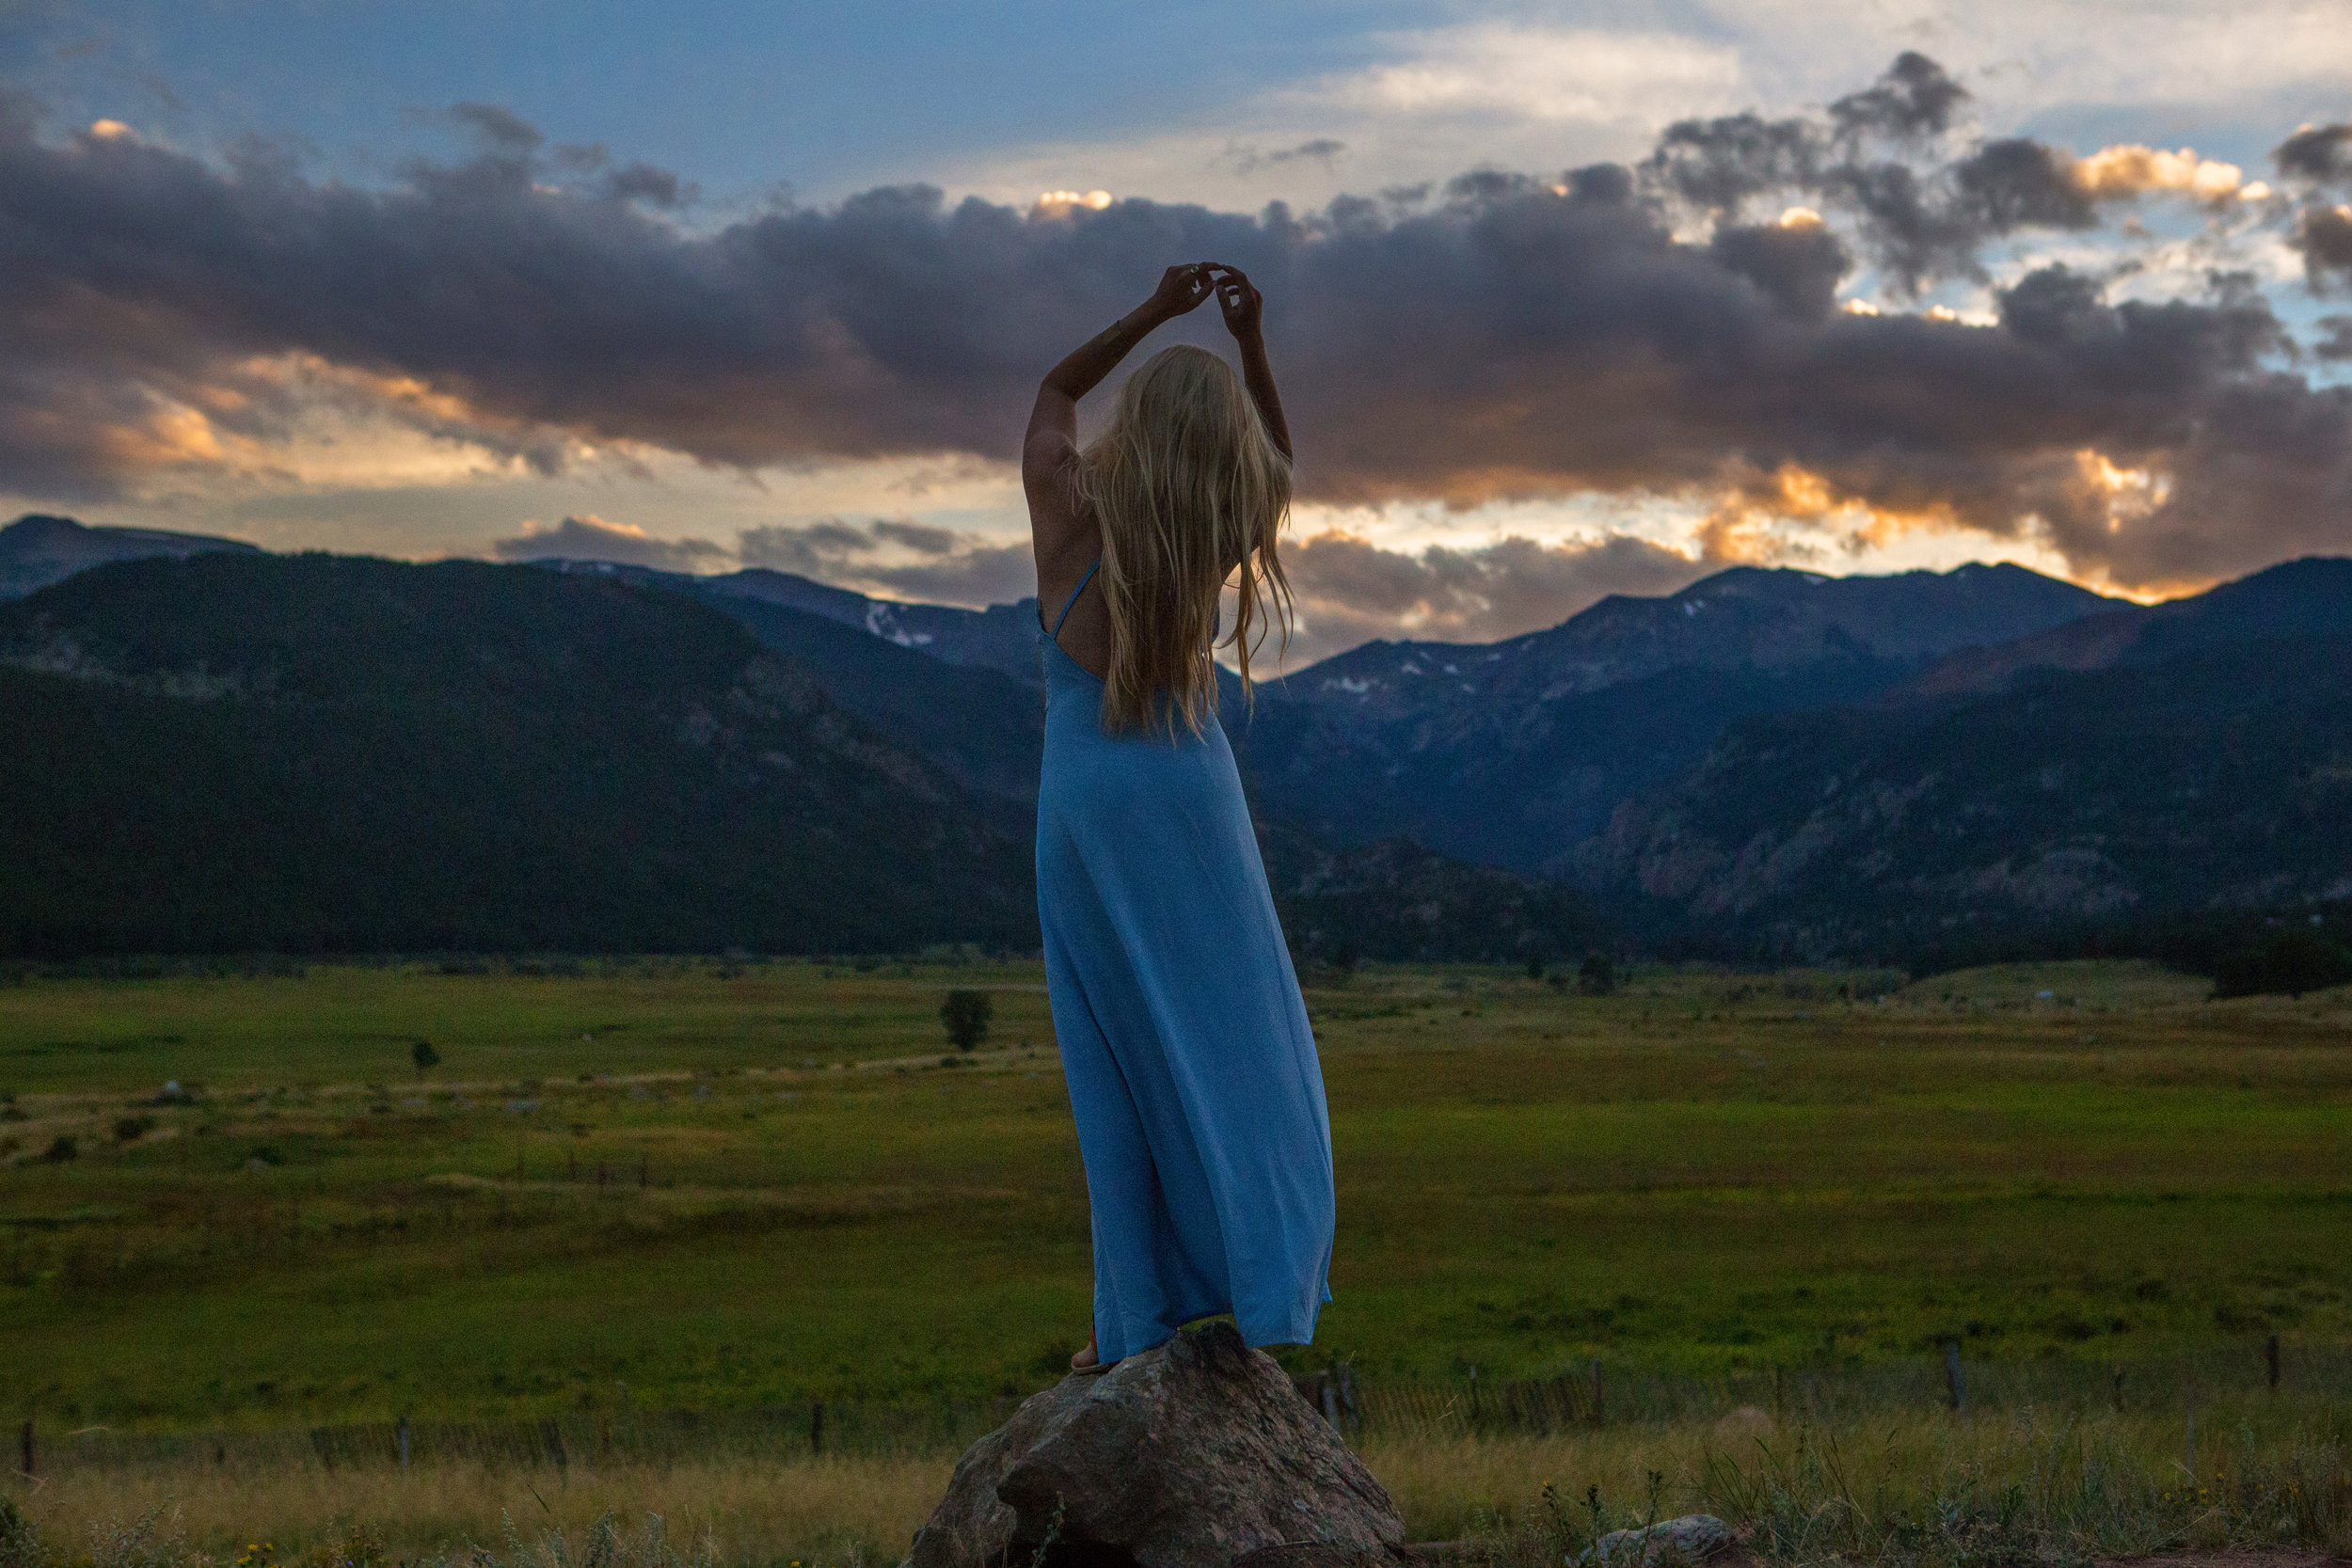 AstroBandit_Rocky_Mountain_National_Park_Sunset_BlueDress_11.jpg